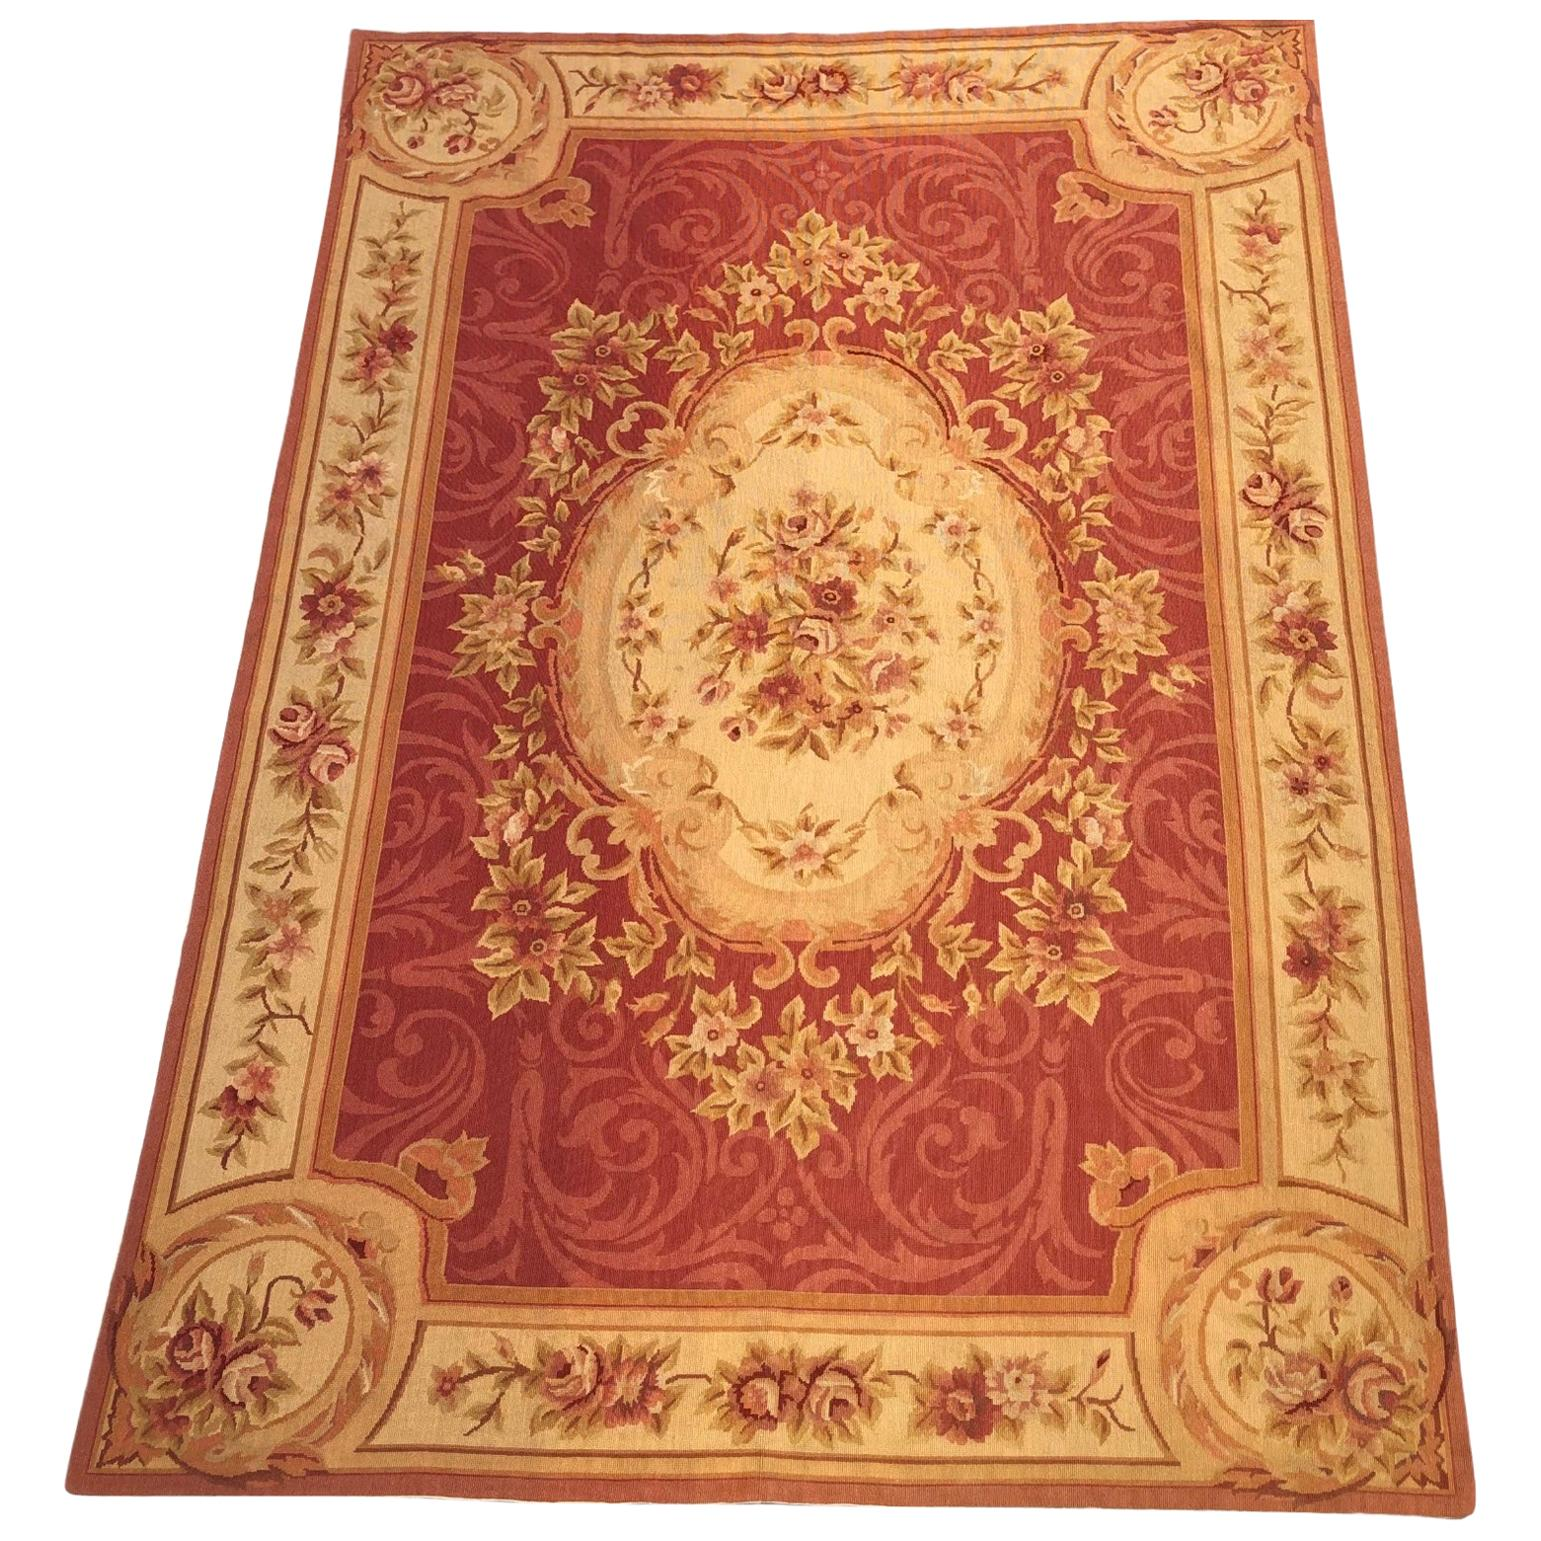 Handwoven Vintage French Aubusson Rug or Tapestry